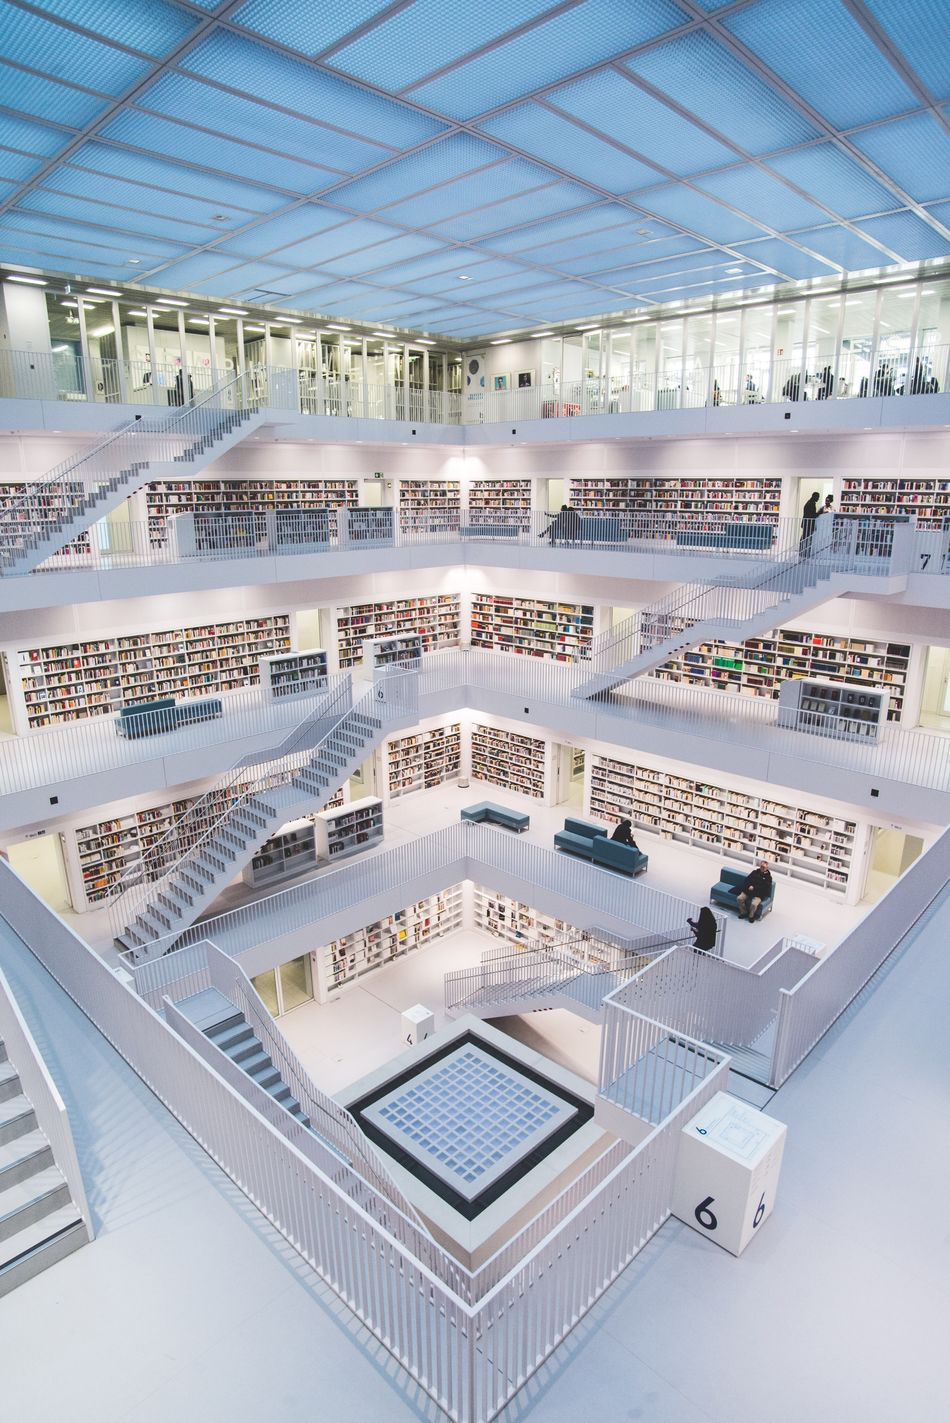 Architecture Business High Angle View No People Built Structure Corporate Business Day Indoors  Modern Business Finance And Industry Bookshelf Library